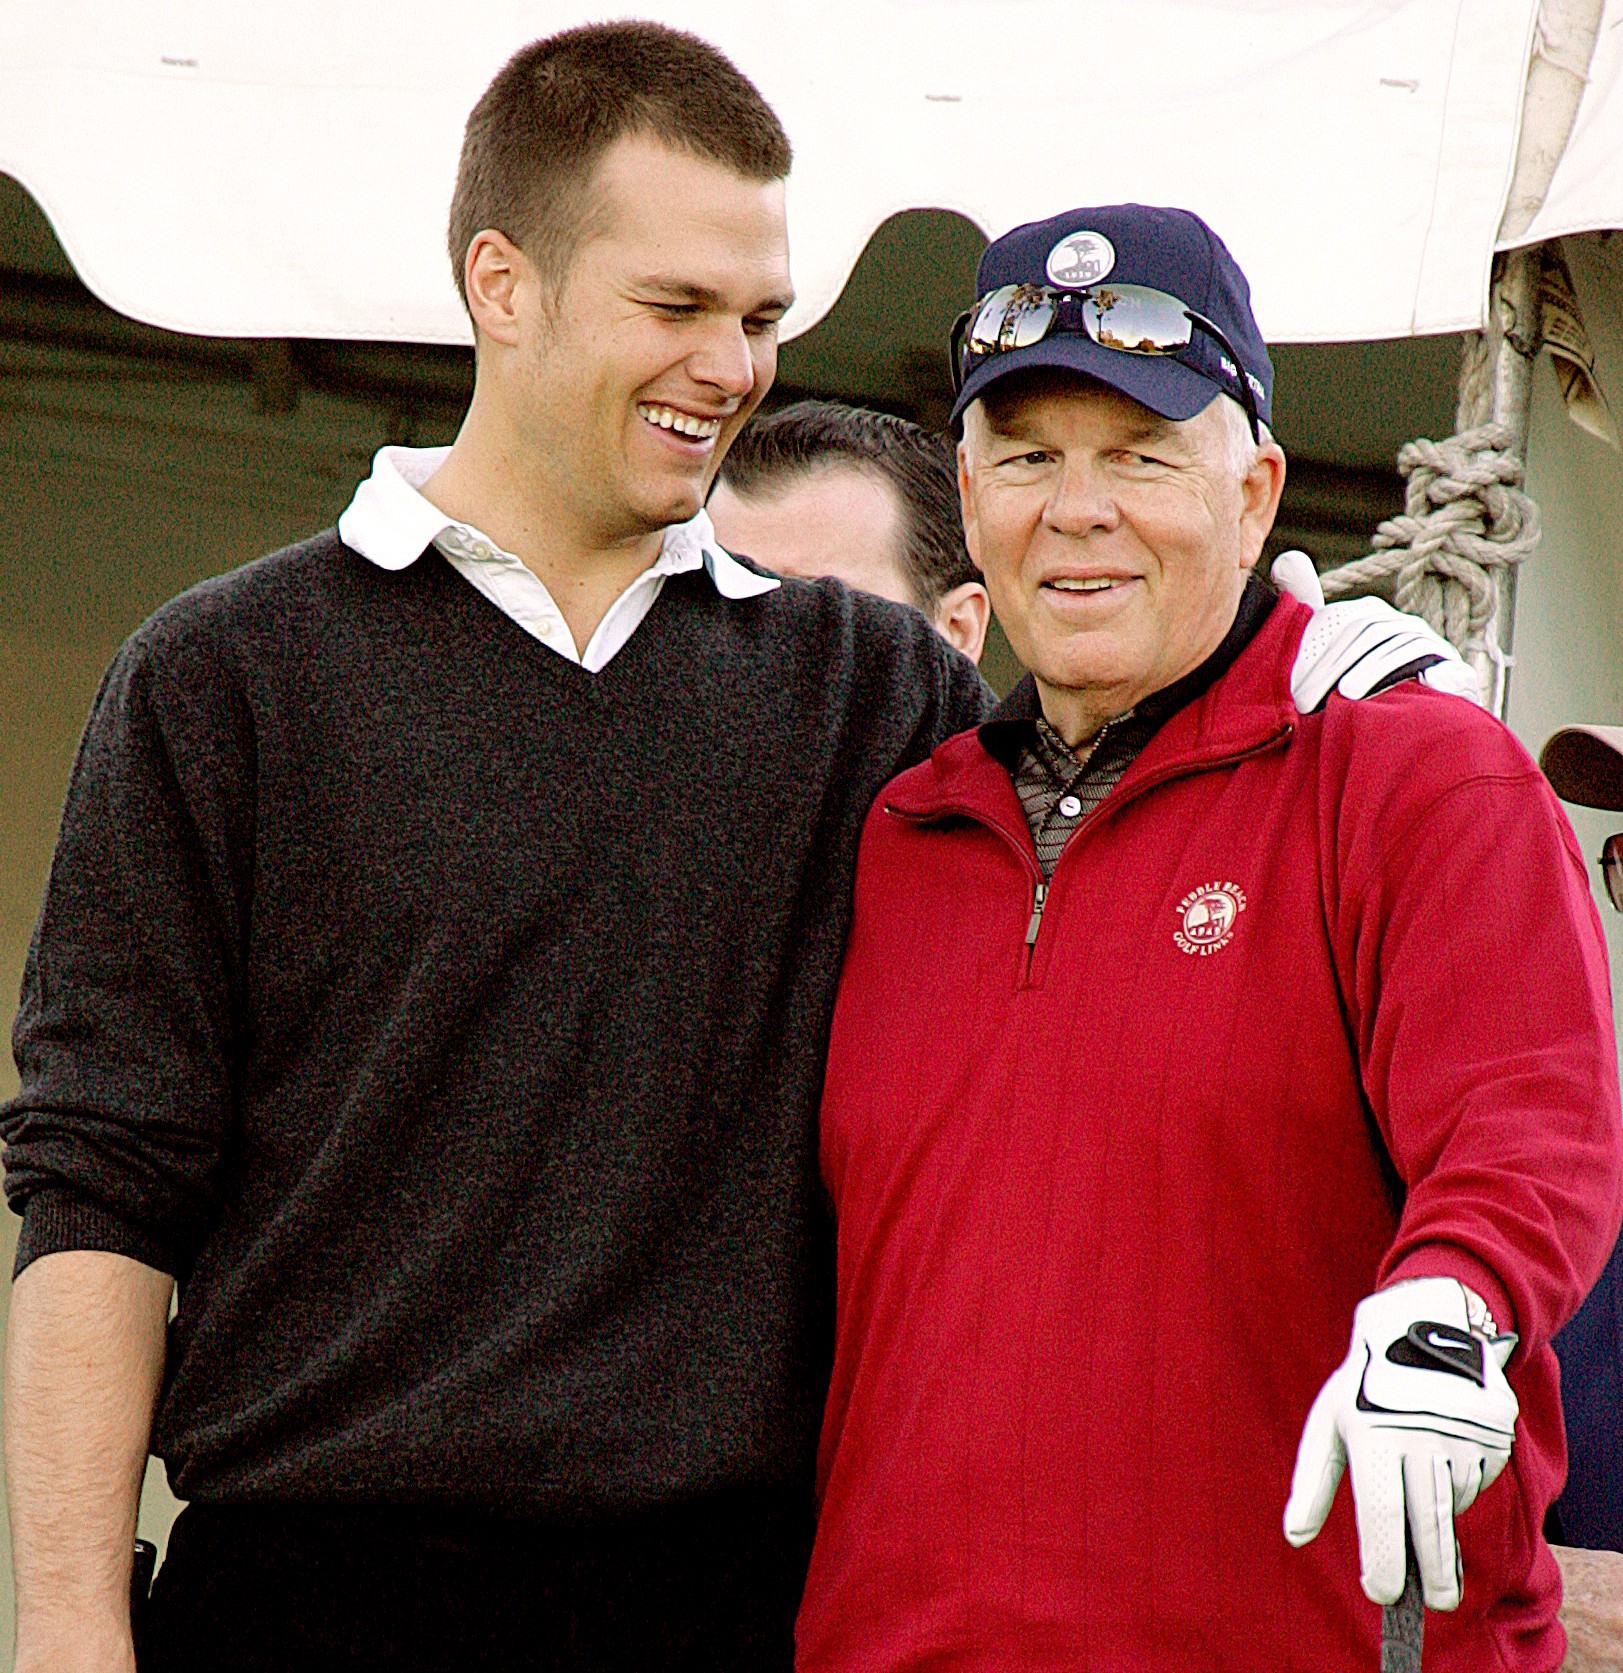 Tom Brady, left, hugs his father Tom Brady Sr. on the first hole of the Poppy Hills course during the first round of the AT&T Pebble Beach National Pro-Am golf tournament Thursday, Feb. 9, 2006, in Pebble Beach, Calif.